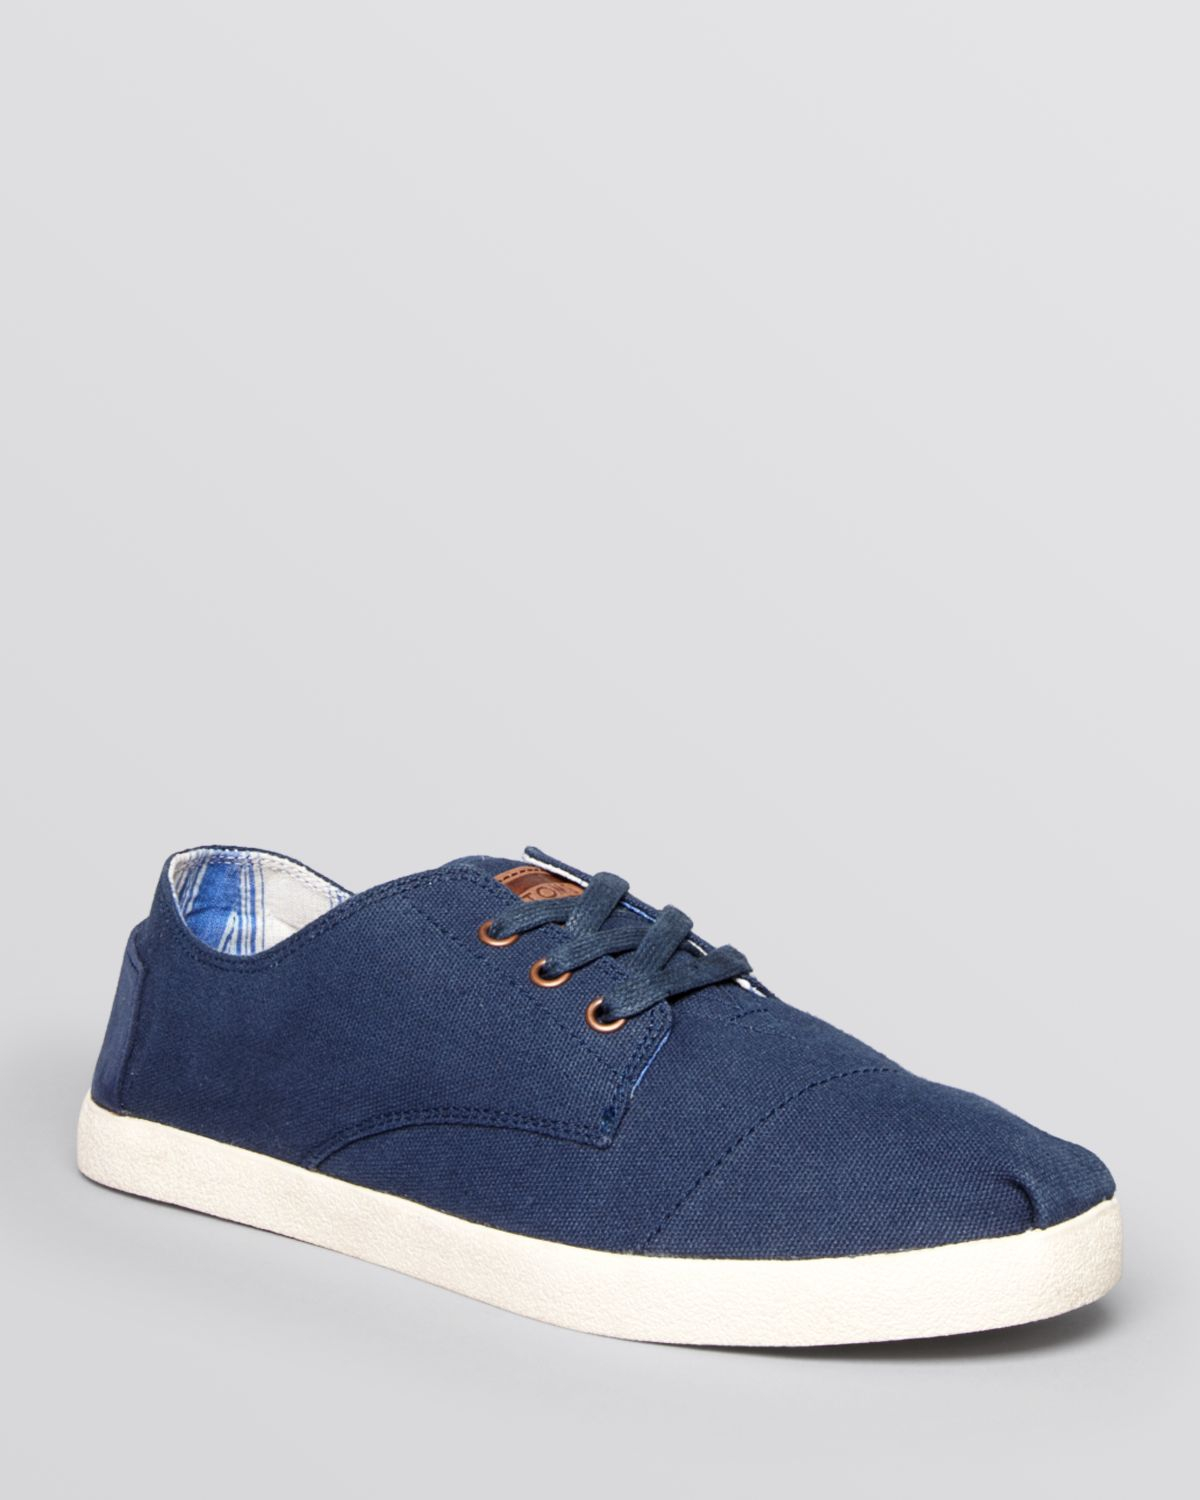 ac93b18d6ca Lyst - TOMS Paseo Canvas Lace-Up Sneakers in Blue for Men